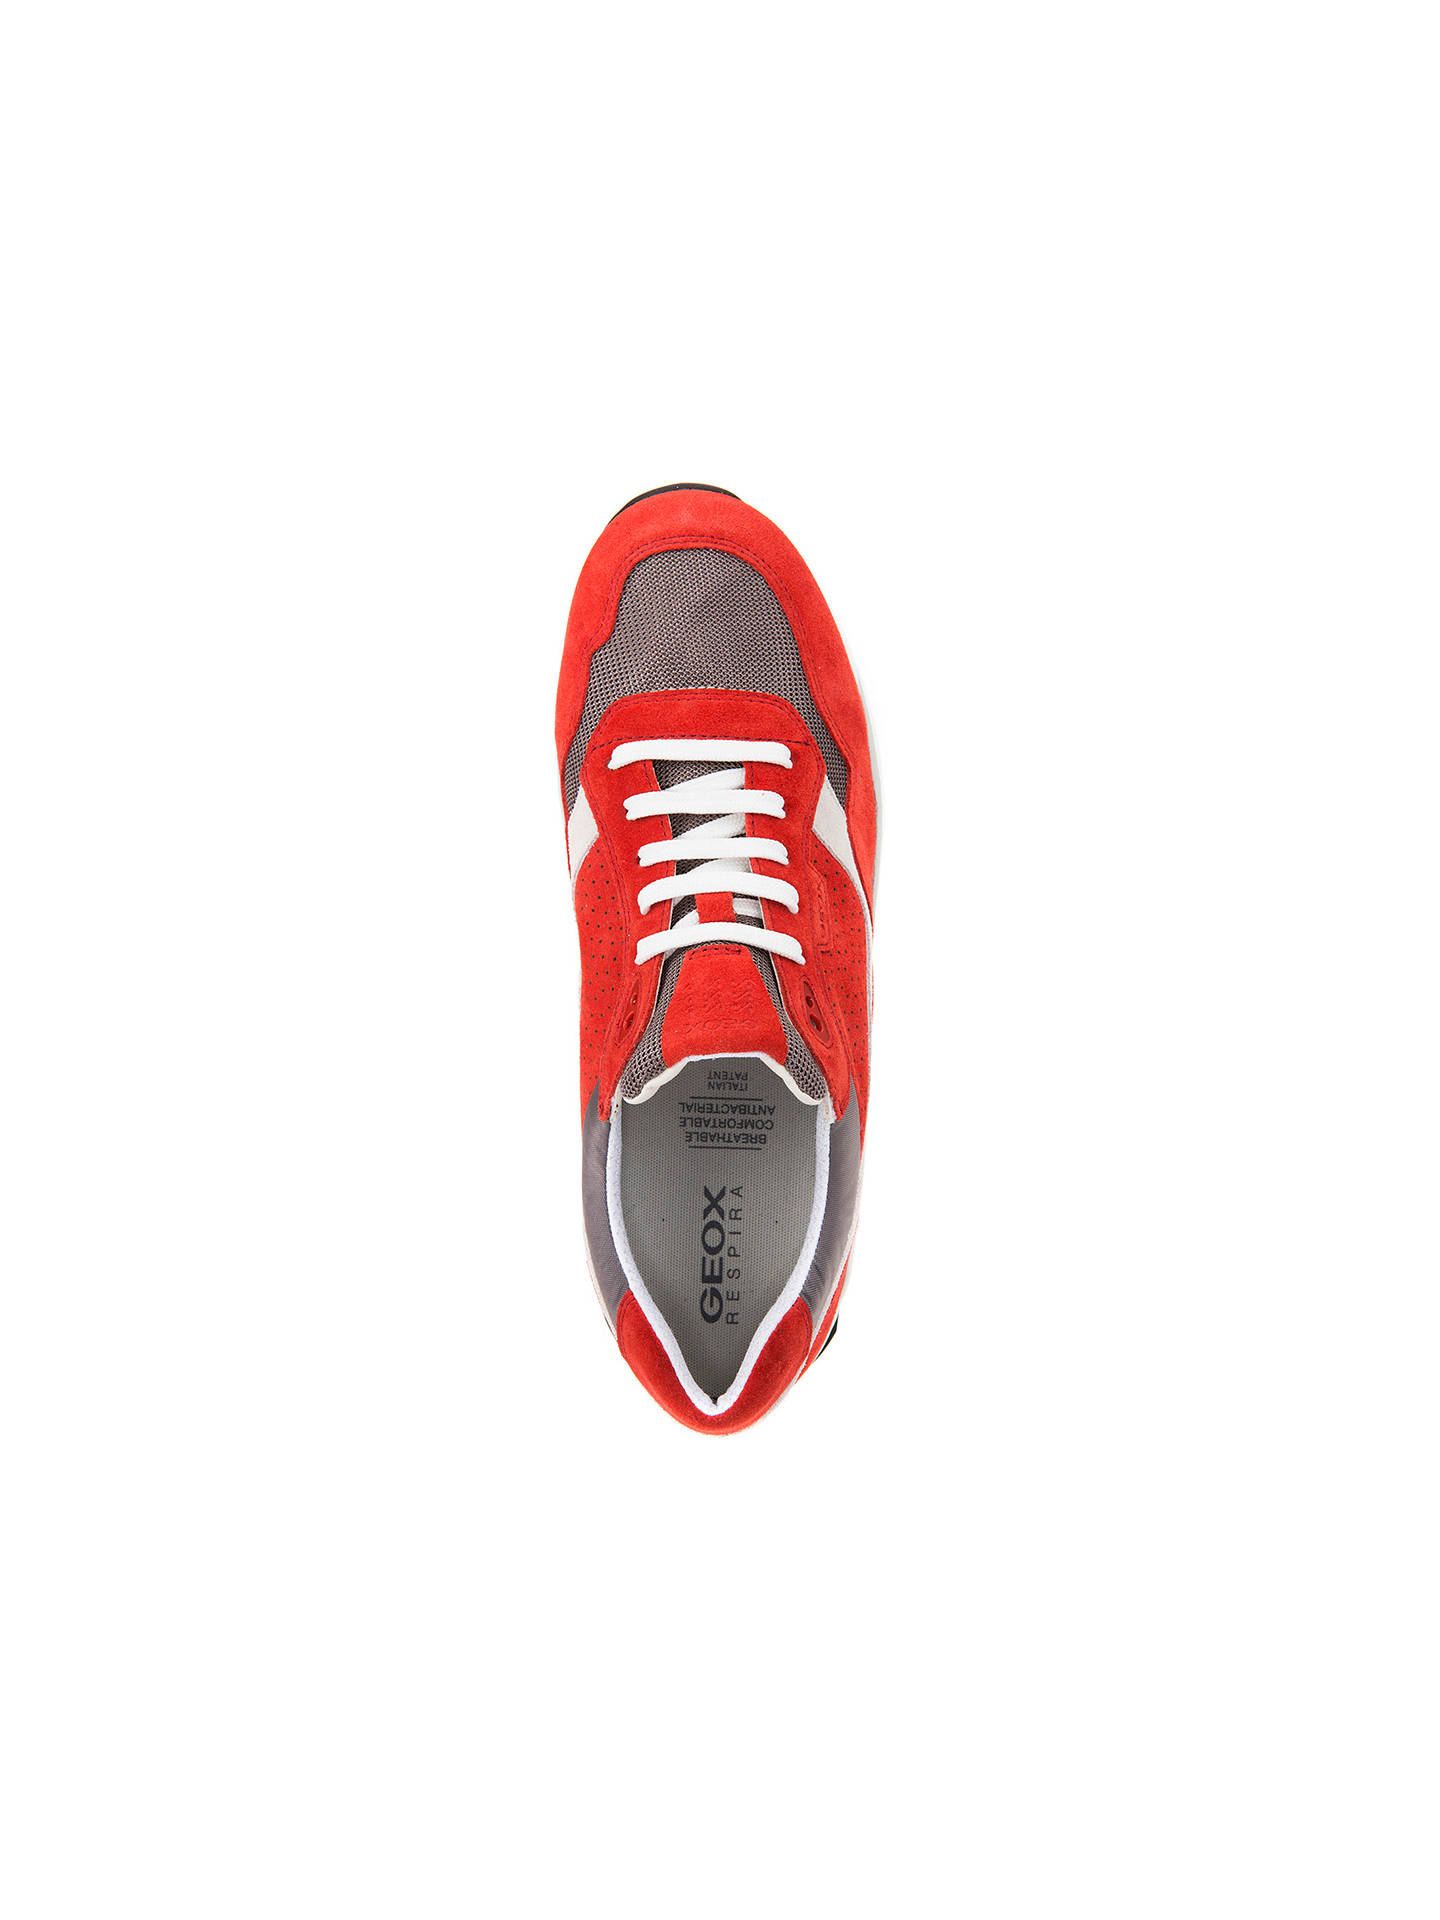 Details about GEOX RESPIRA BREATHABLE COMFORTABLE ANTIBACTERIAL ITALIAN PATENT UK SIZE 7